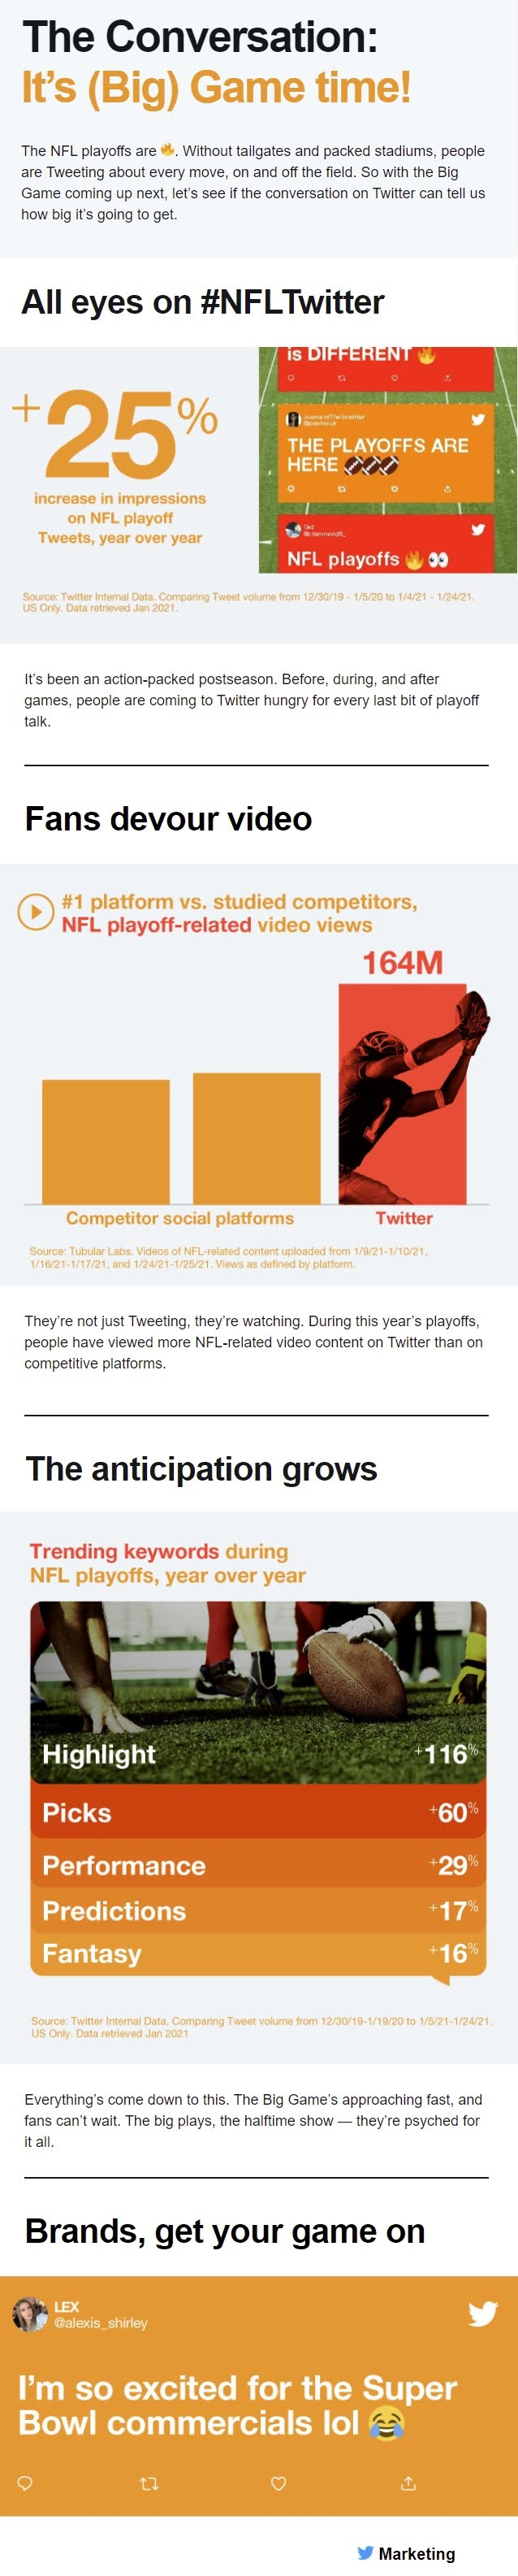 twitter-shares-insights-into-rising-discussion-around-the-nfl-playoffs-infographic